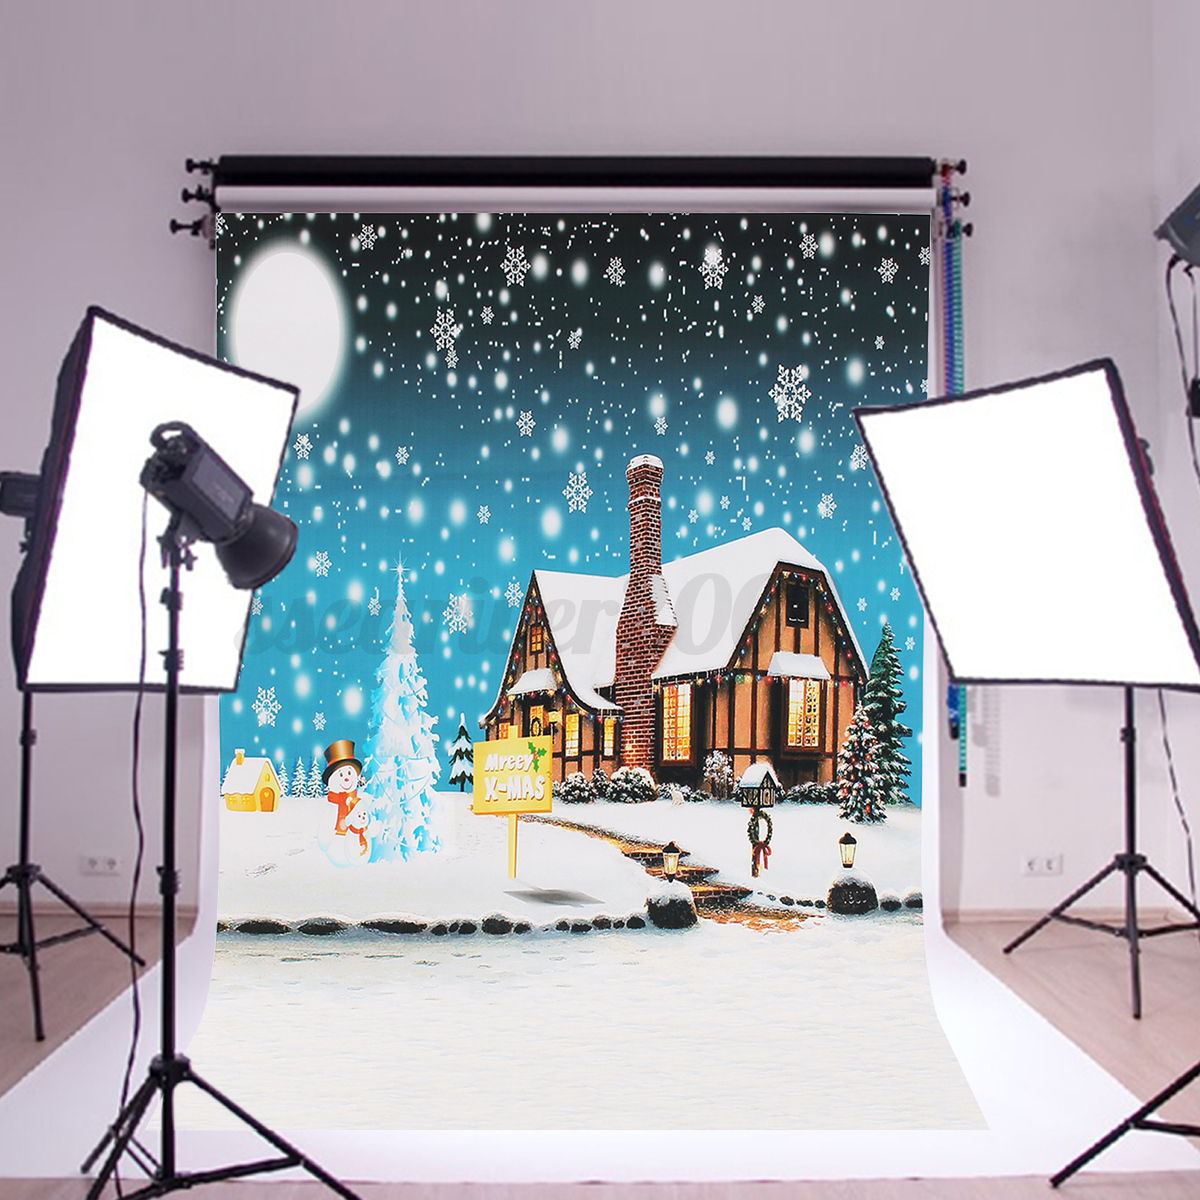 toile de fond backdrop tissu photographie studio photo no l neige d cor 90 60cm ebay. Black Bedroom Furniture Sets. Home Design Ideas